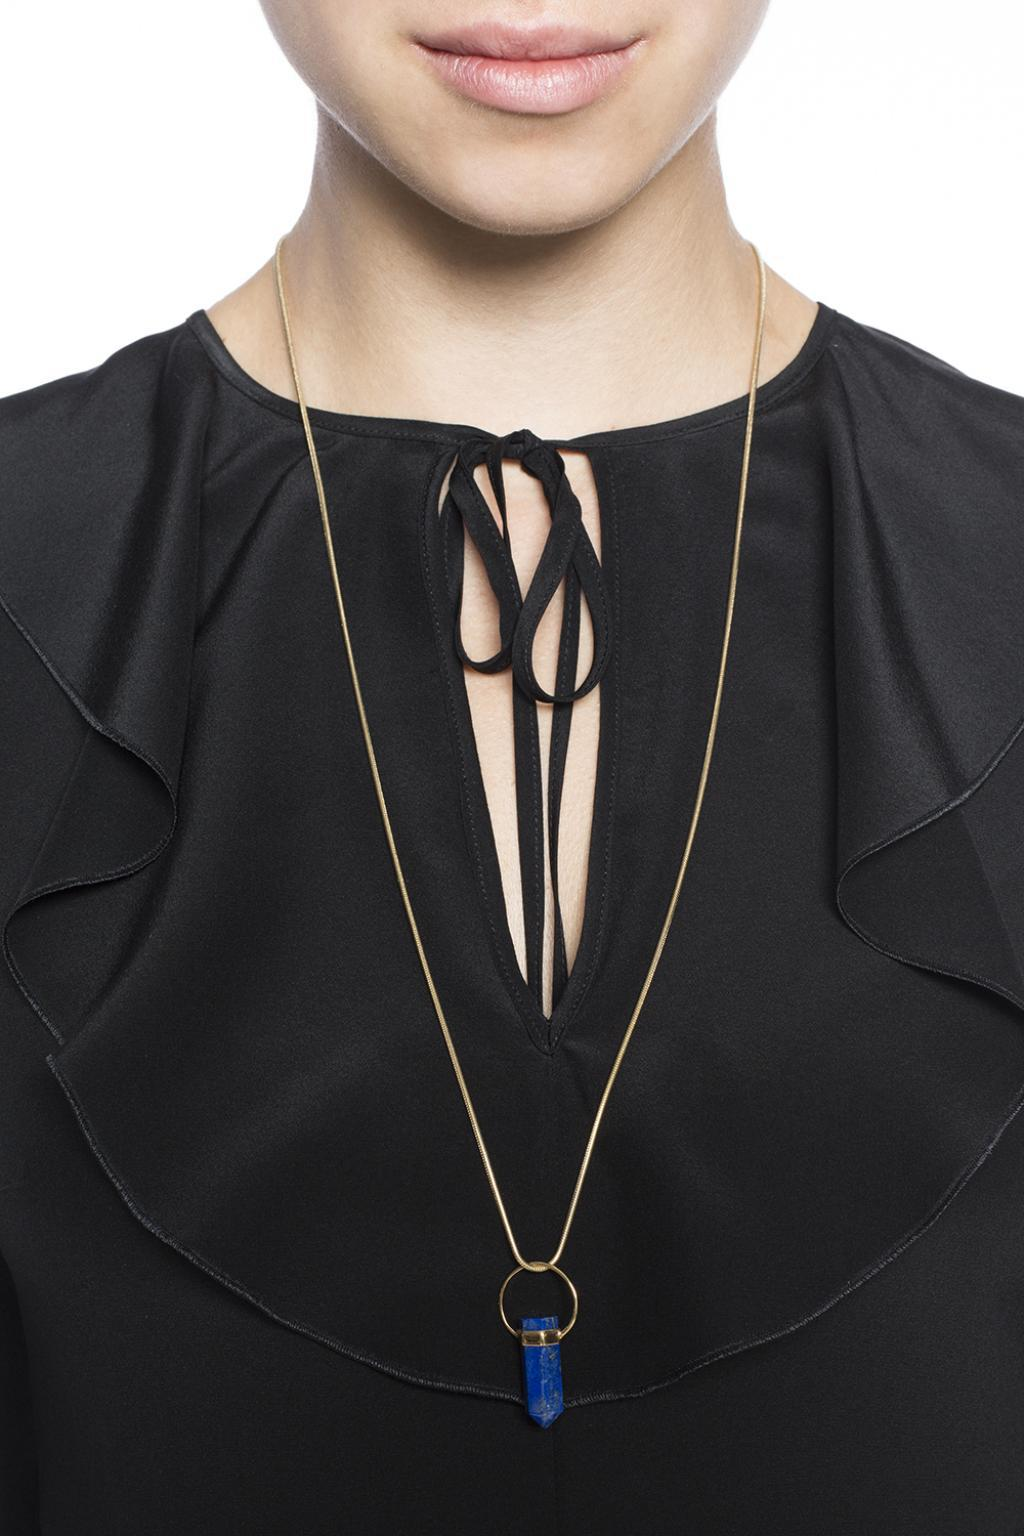 Isabel Marant Necklace With Charm in Gold (Metallic)